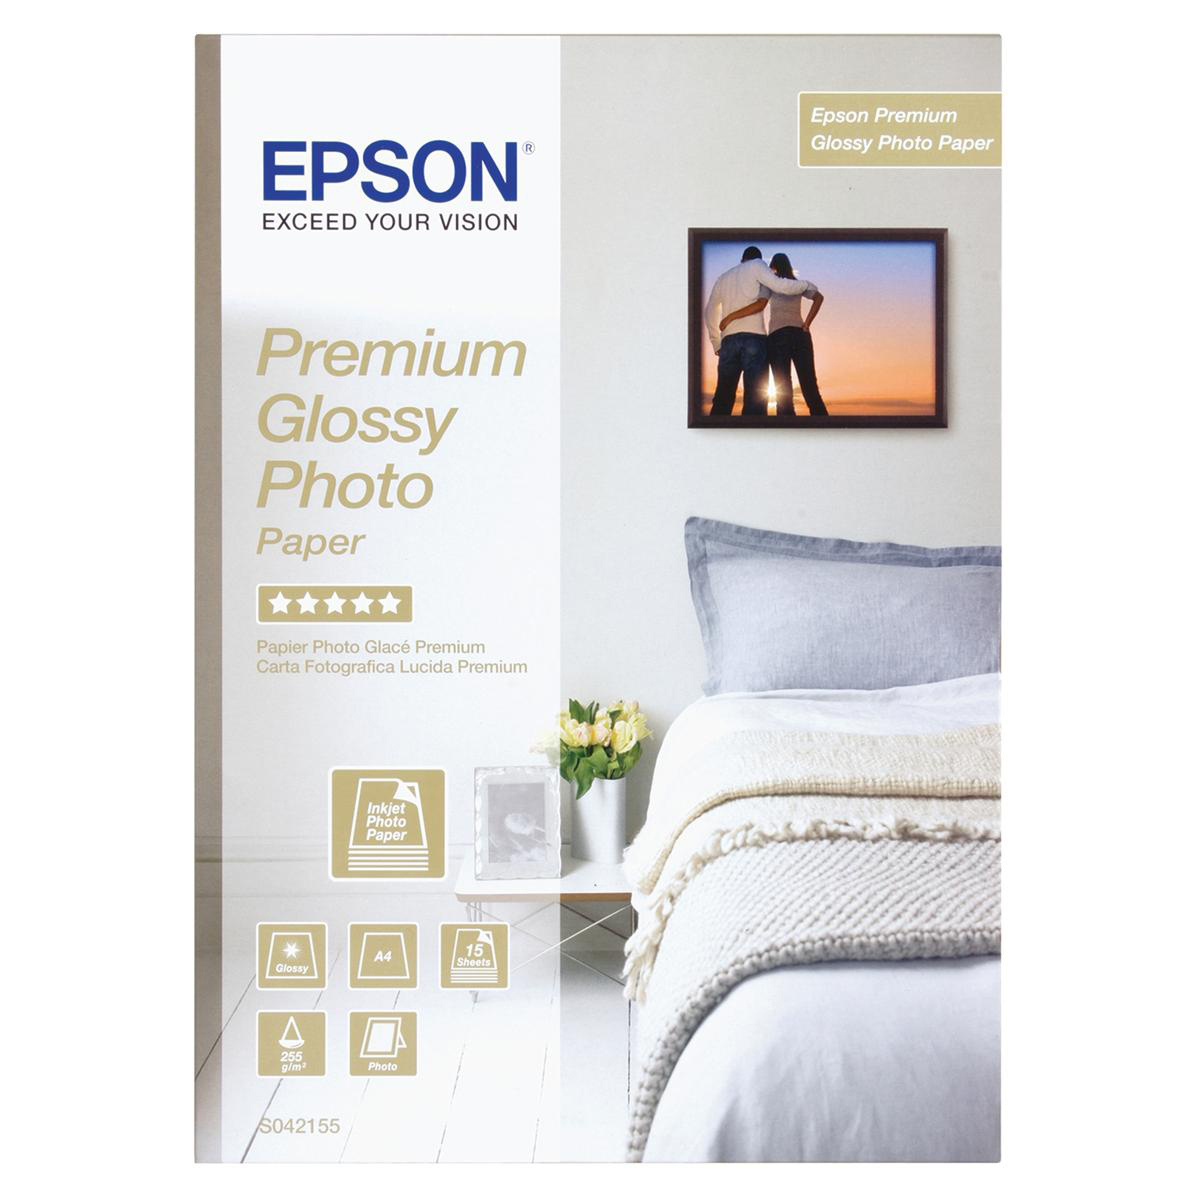 Photo Paper Epson Photo Paper Premium Glossy 255gsm A4 Ref C13S042155 15 Sheets